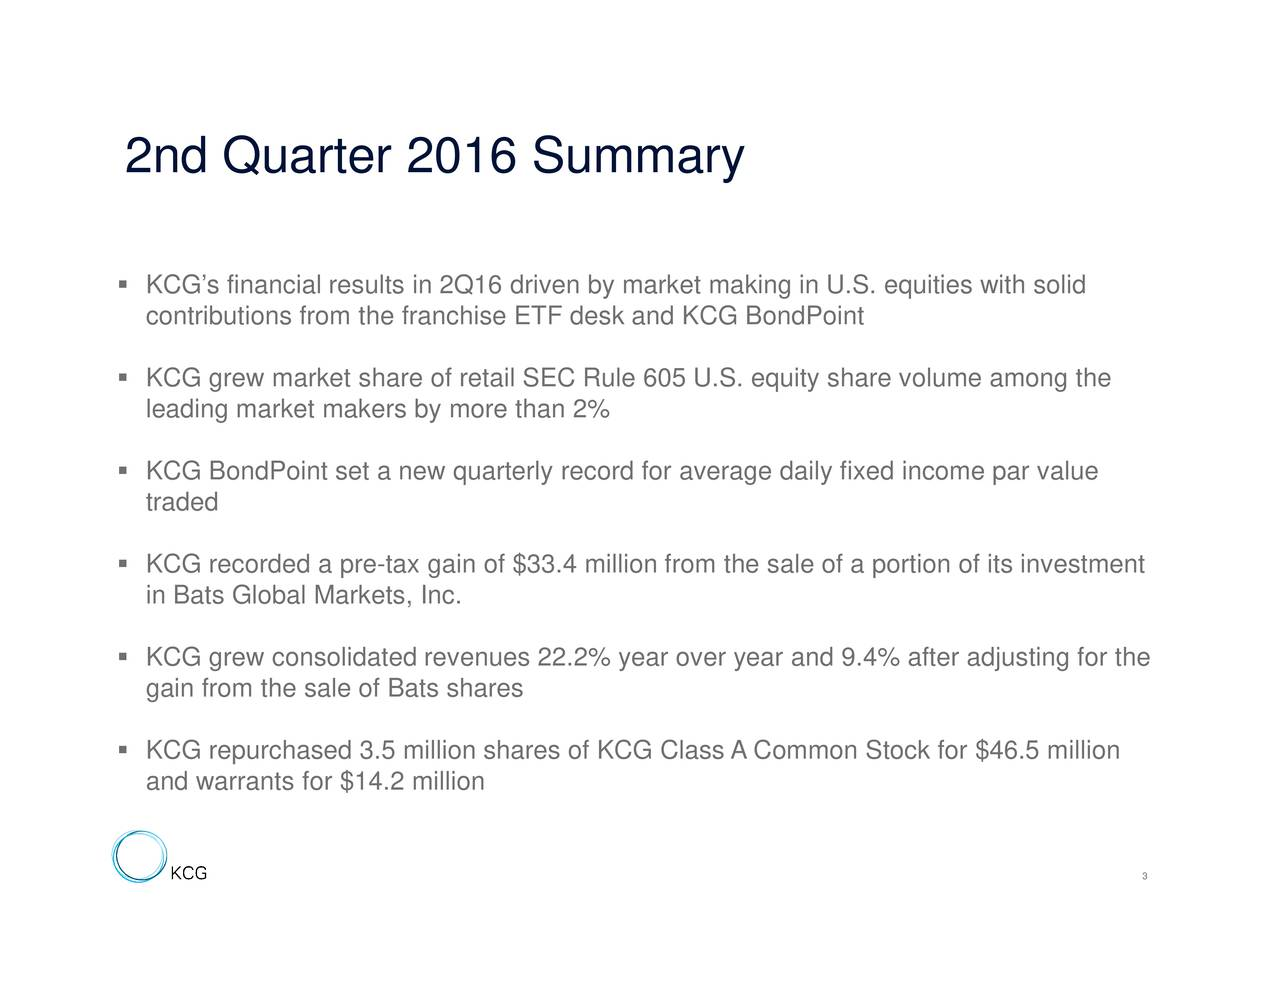 and 9.4% after adjusting for the ondPointty share volume among thearommon Stock for $46.5 million king in U.S. equities he sale of a portion of its investment KCcosfbCtiadifwsGldknnCiaarisrGGogbfpsanketg,Ian.s$3vse1mvelageonayes 2nd Quarte 2016 ummary